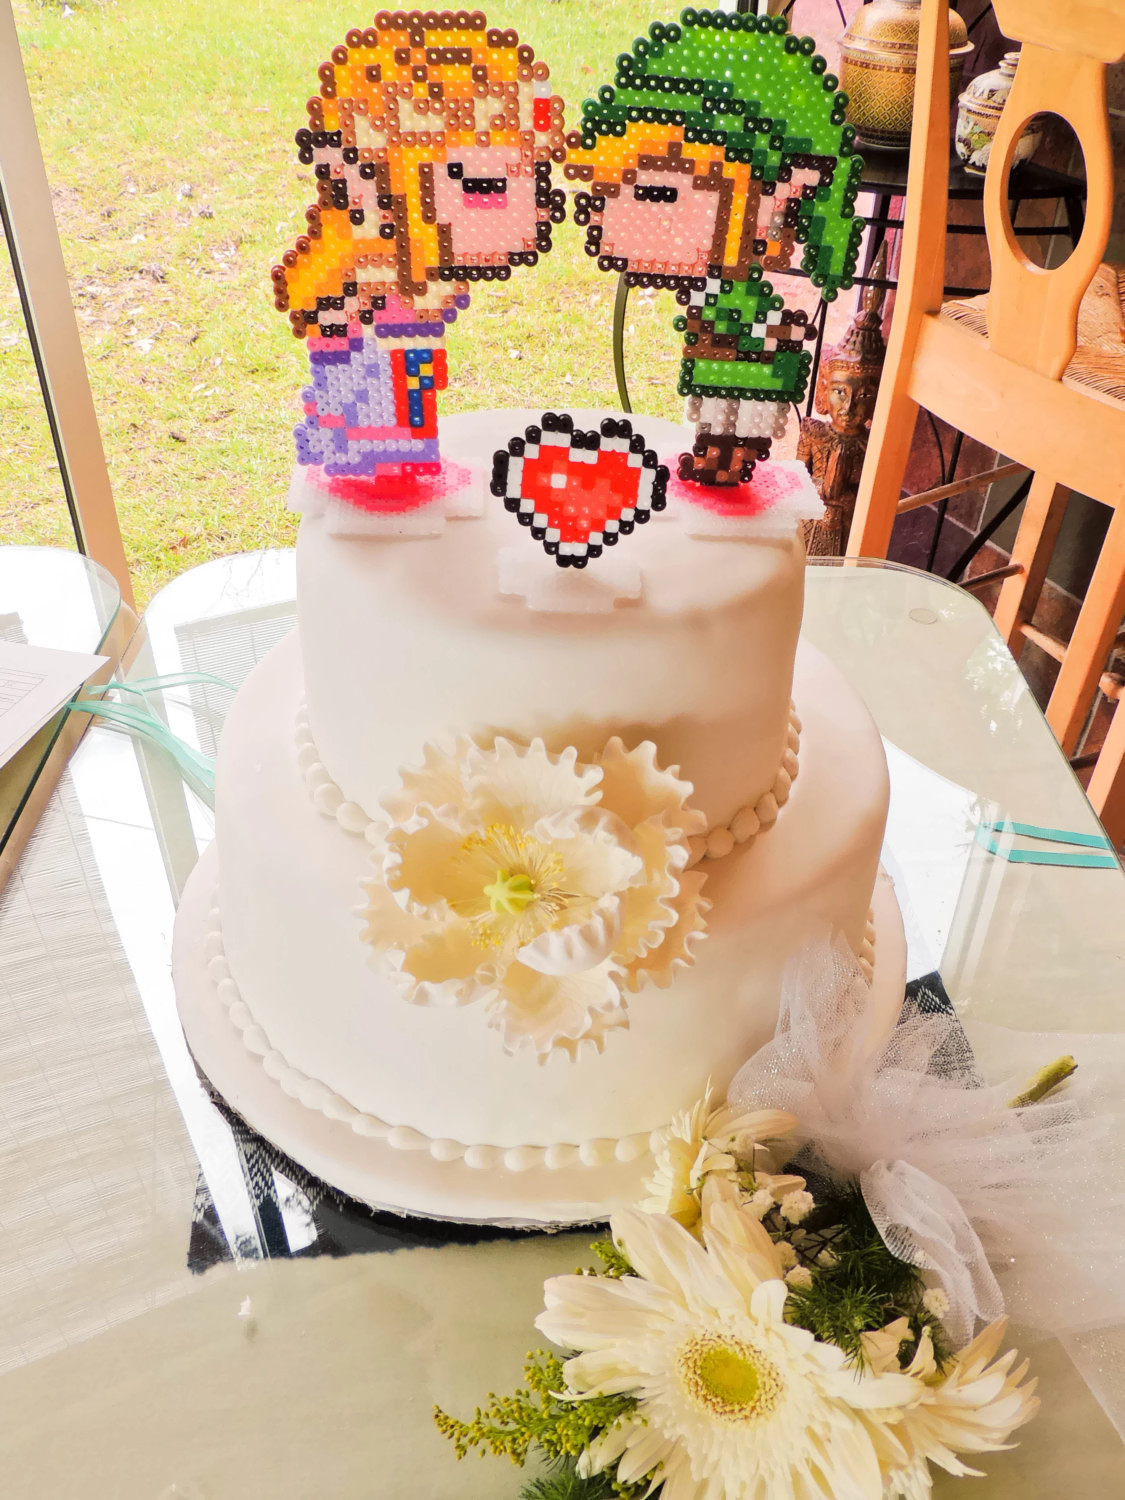 Link and Zelda Kissing Gamer Wedding Cake Topper Decorations    Zelda And Link Wedding